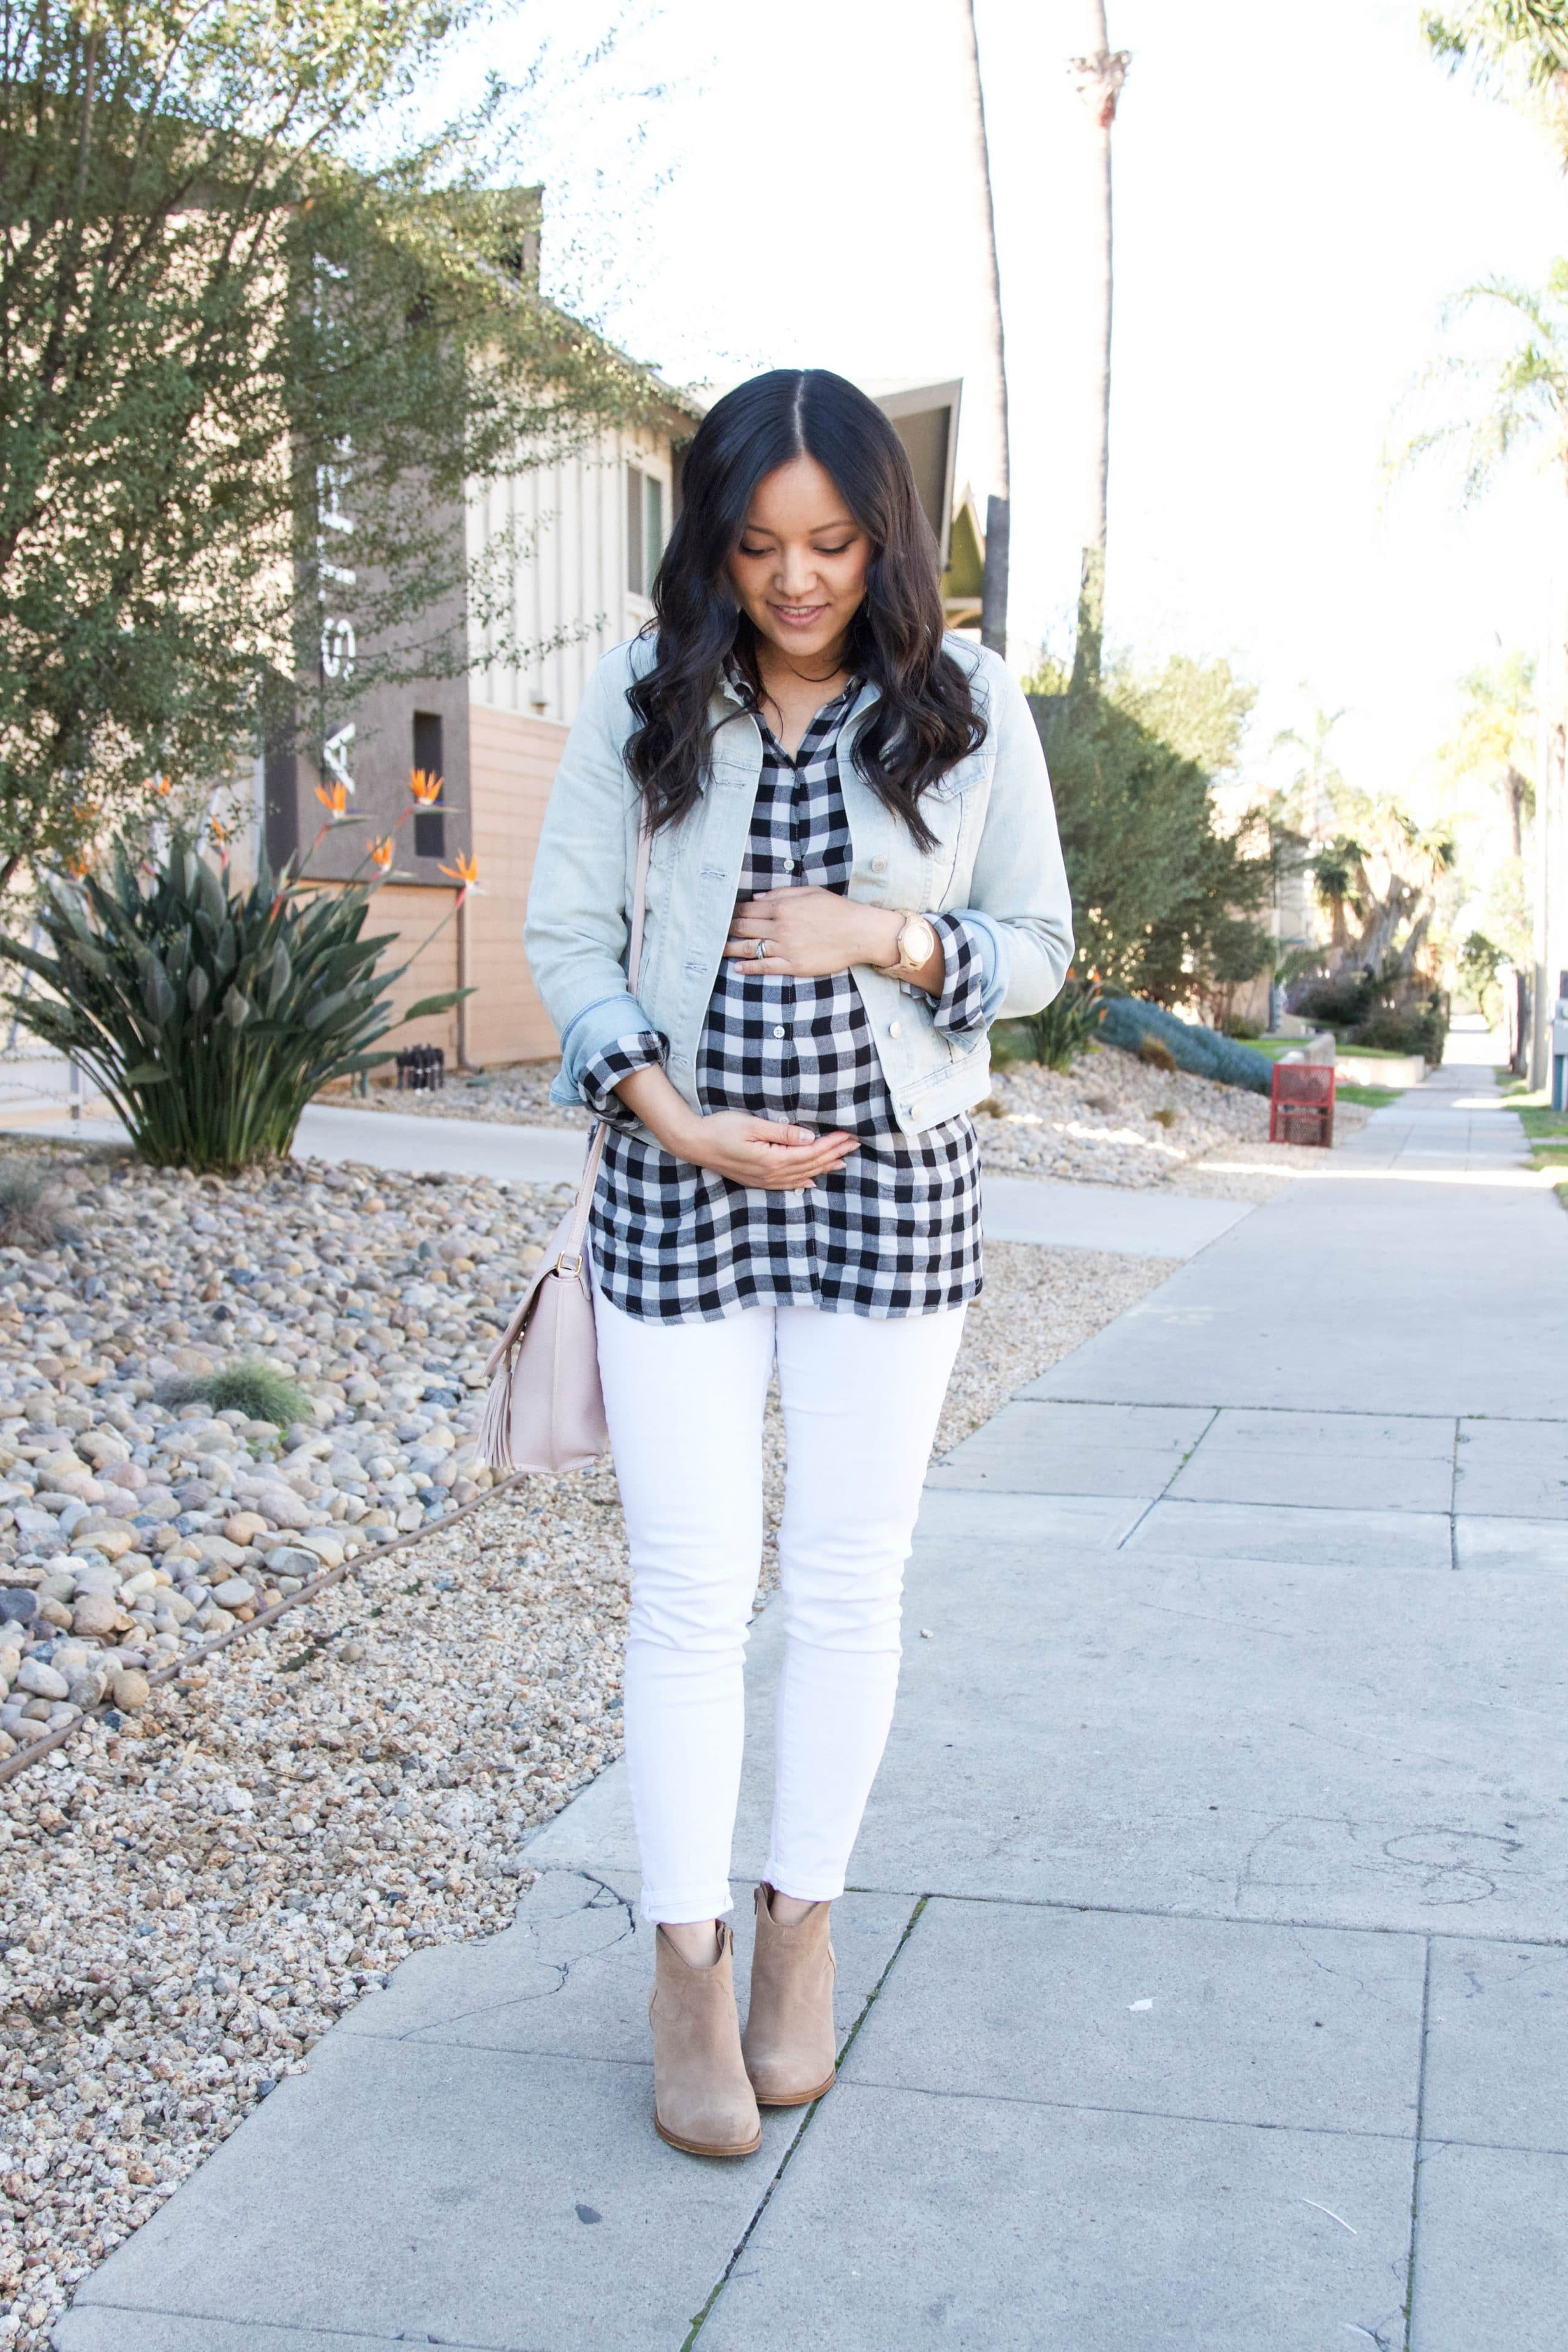 Jean Jacket + Gingham Shirt + Jord Watch + White Jeans + Taupe Booties